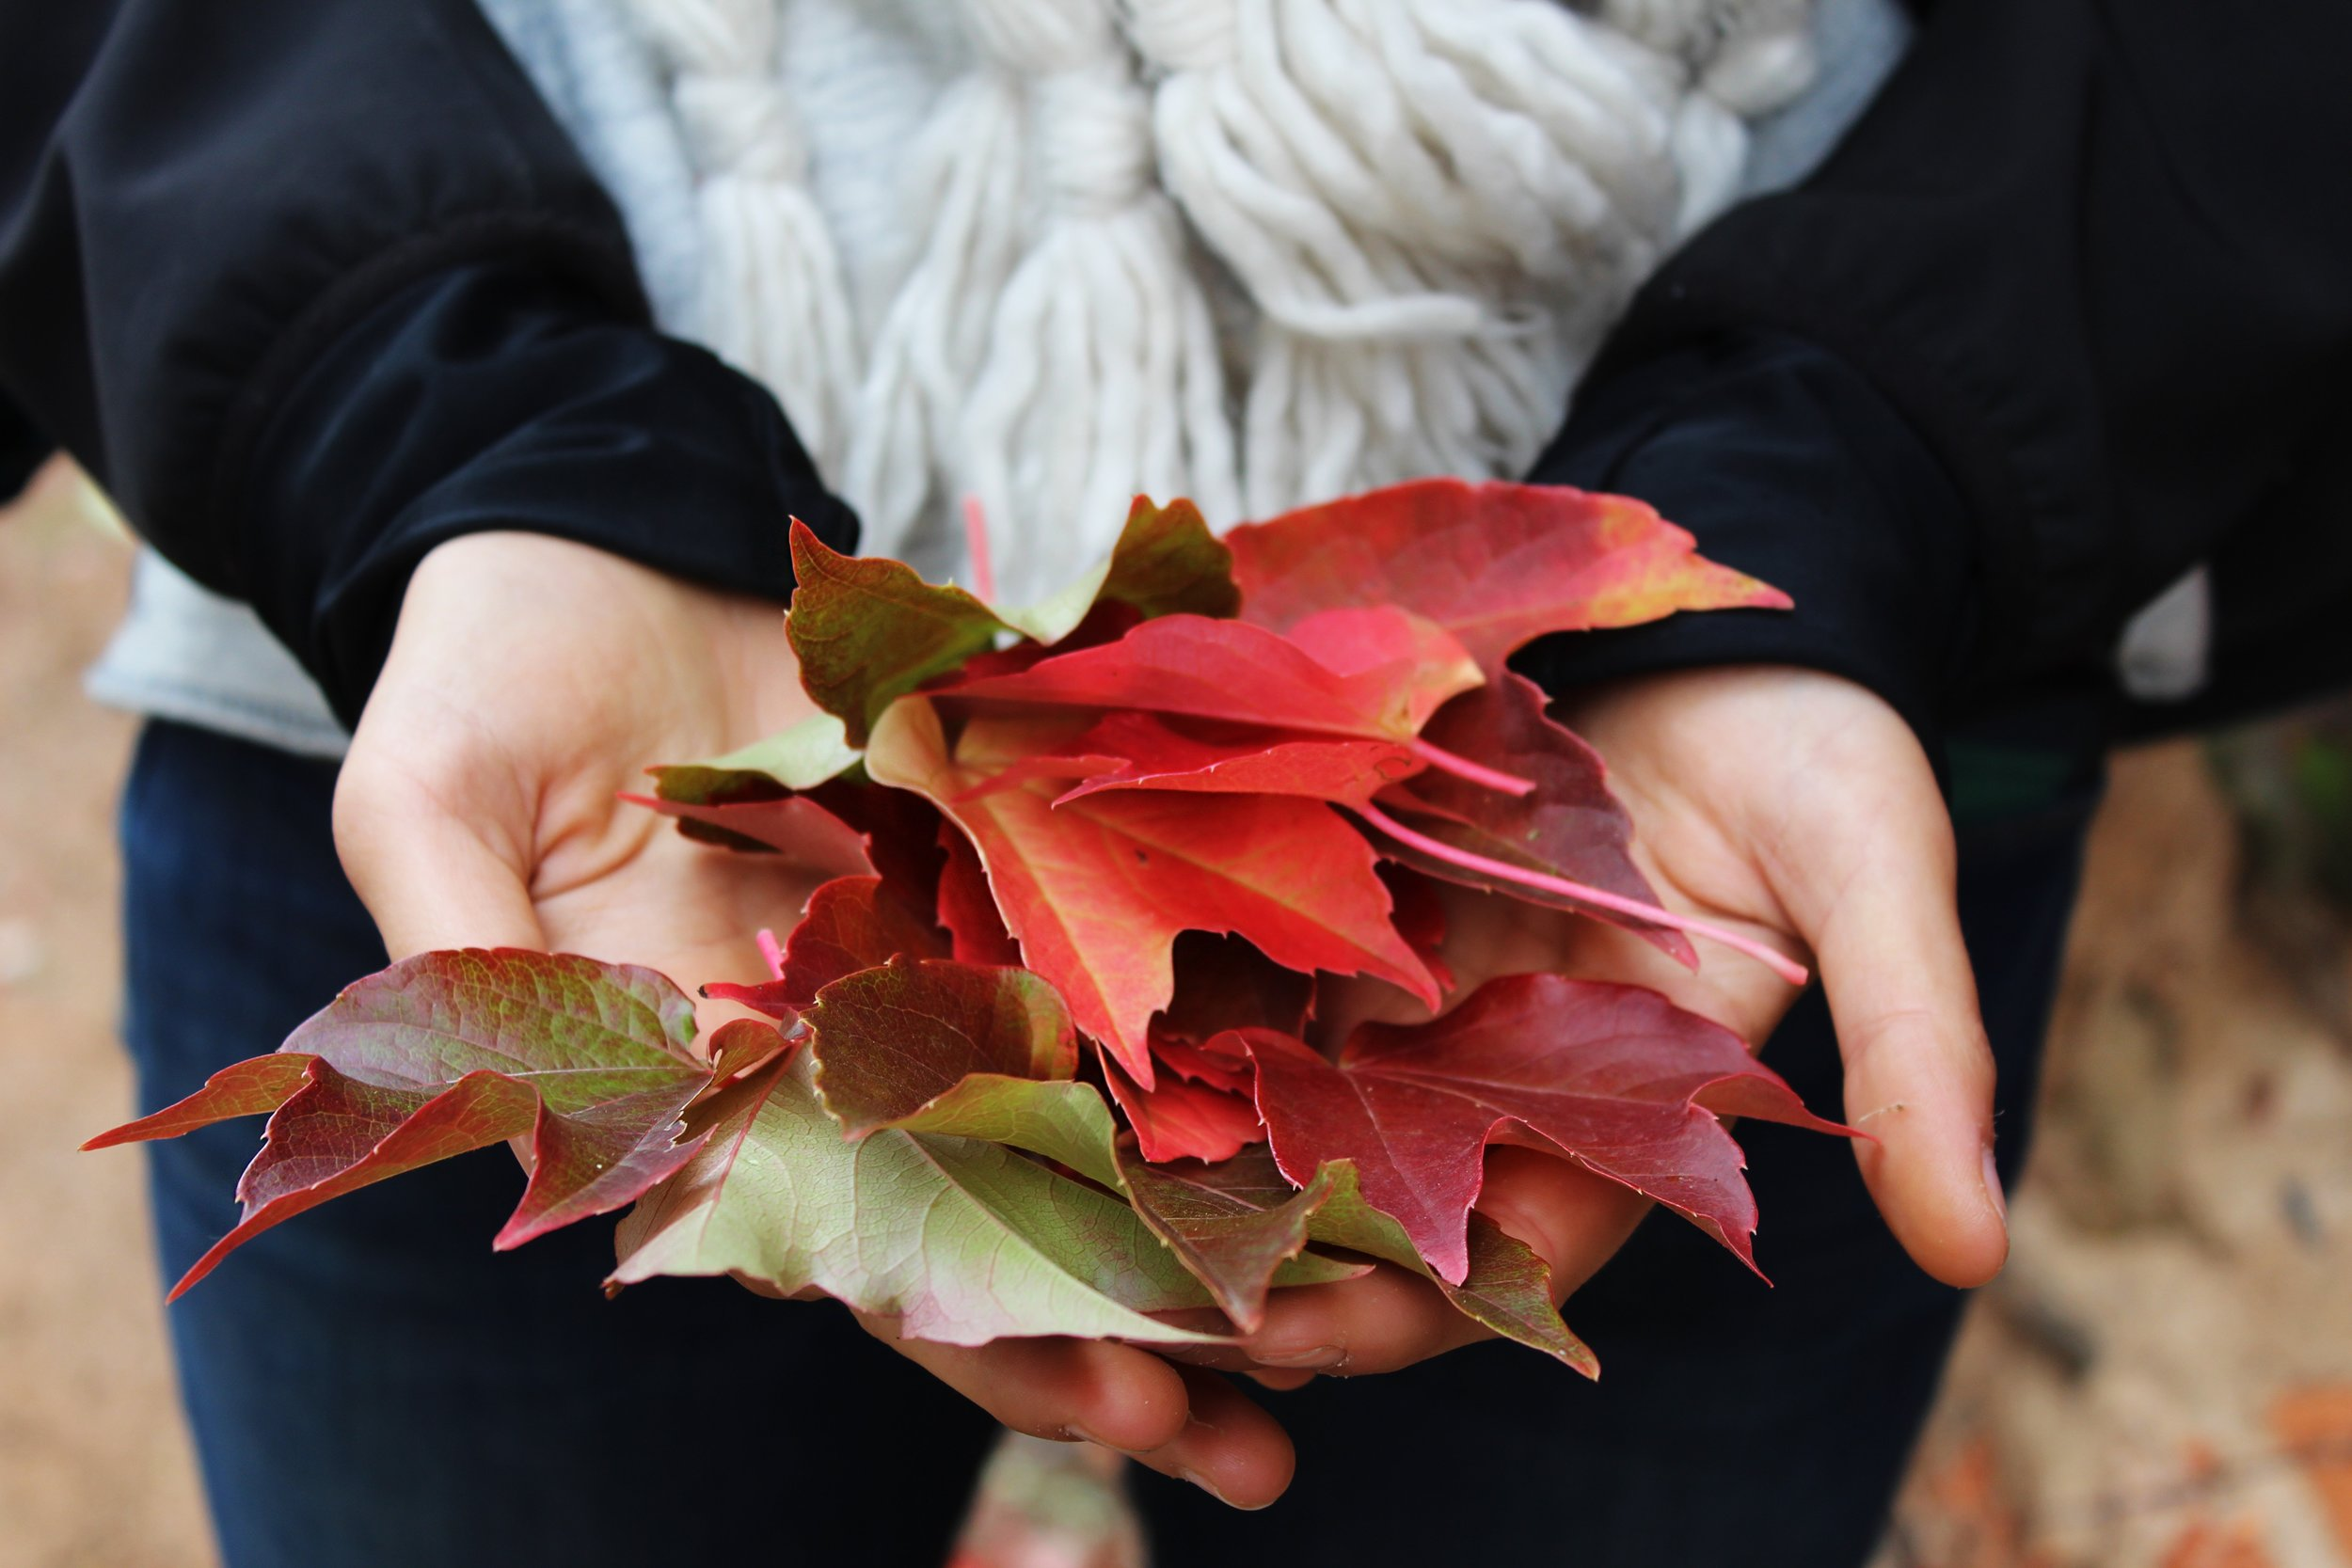 Holding red leaves in autumn